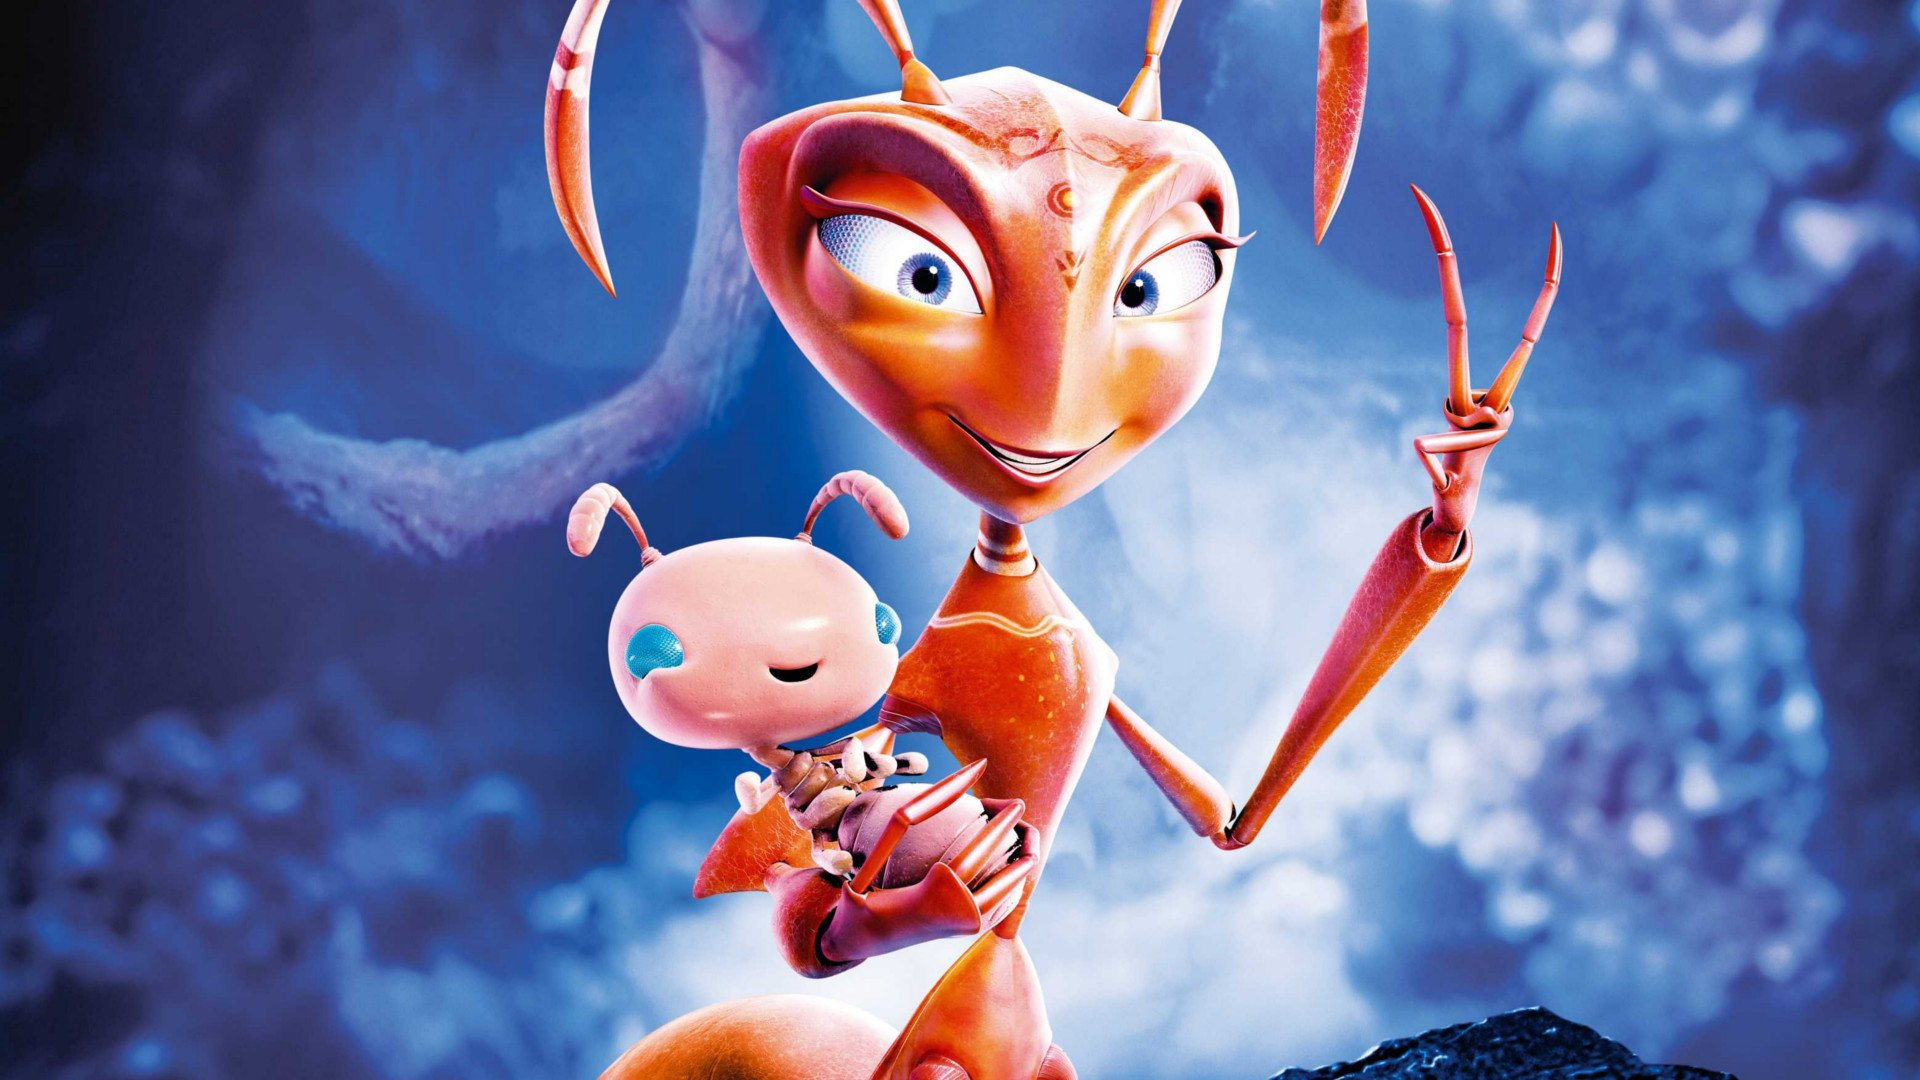 The Ant Bully Hd Wallpaper